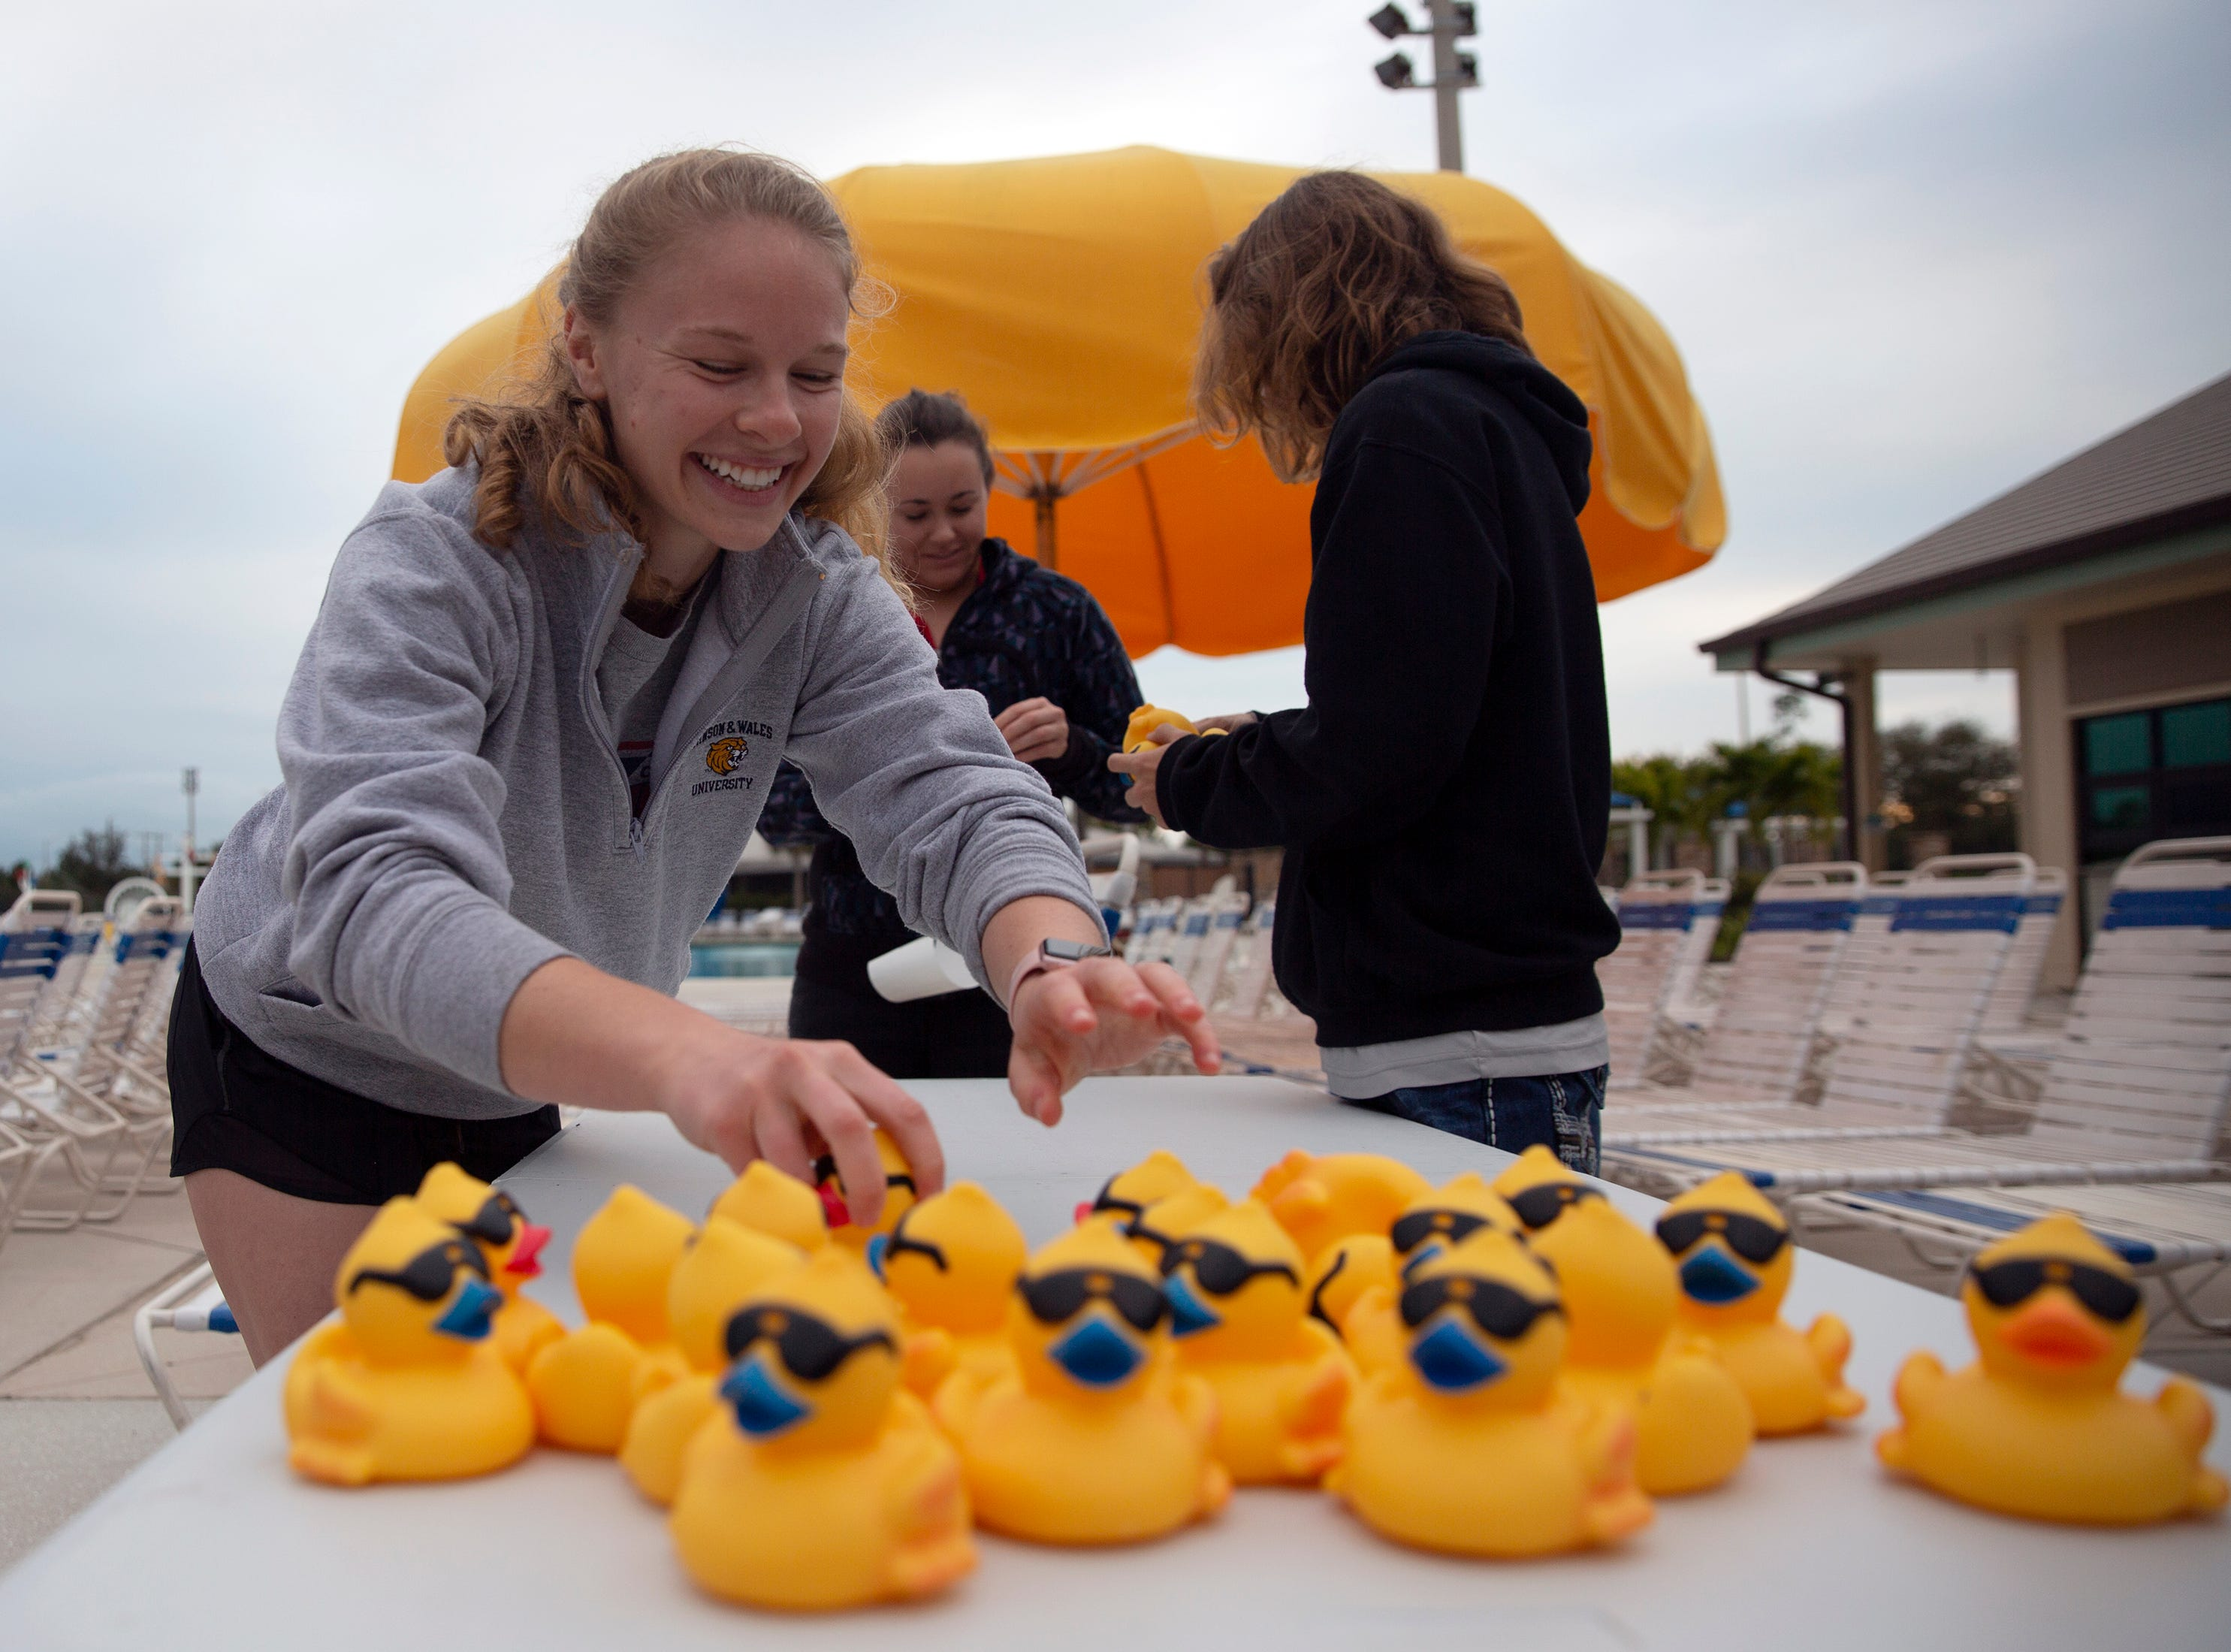 Greer Burcky, left, Kelly Heinemeyer and Ian Hughes tag rubber ducks, Wednesday, Jan. 30, 2019, at the North Collier Regional Park in East Naples.